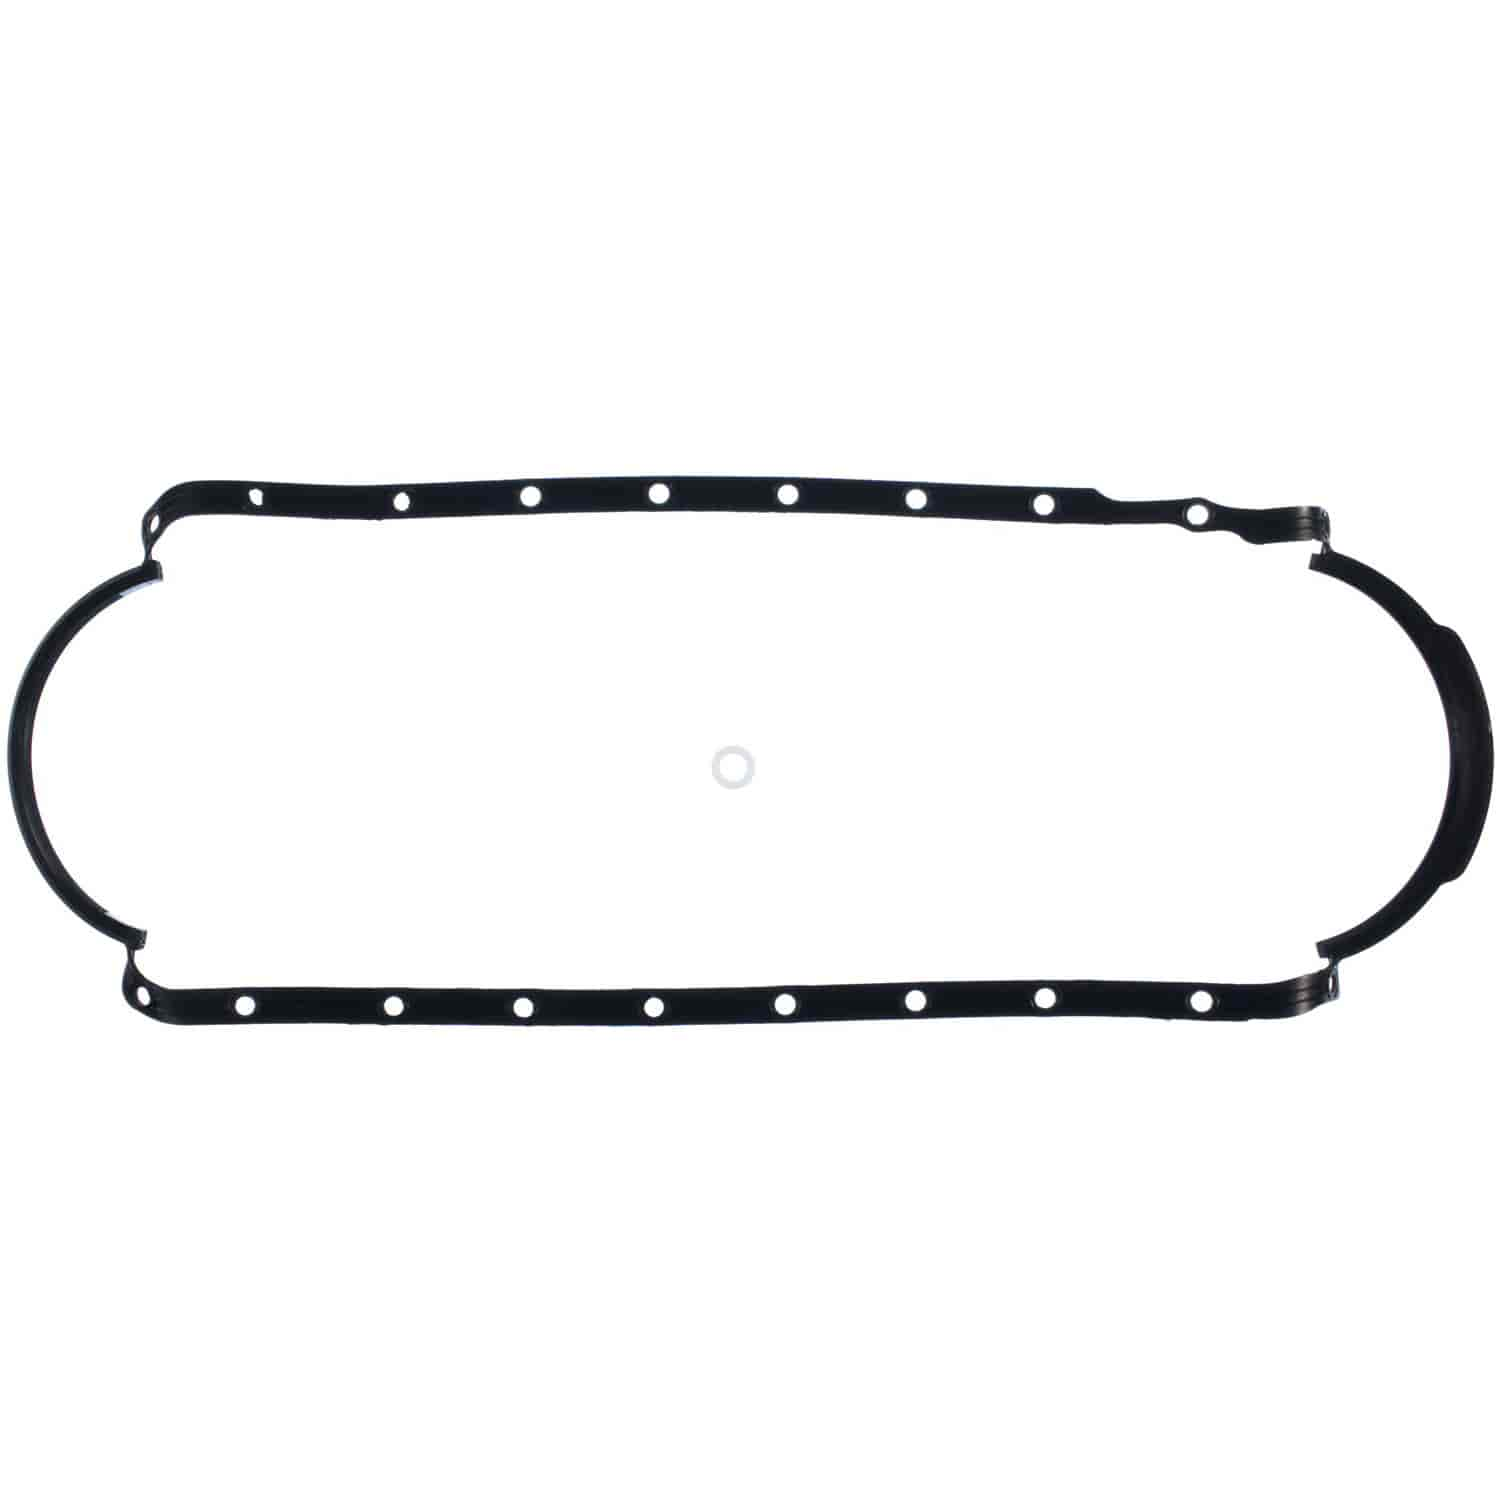 clevite mahle os32121  oil pan gasket set 1991